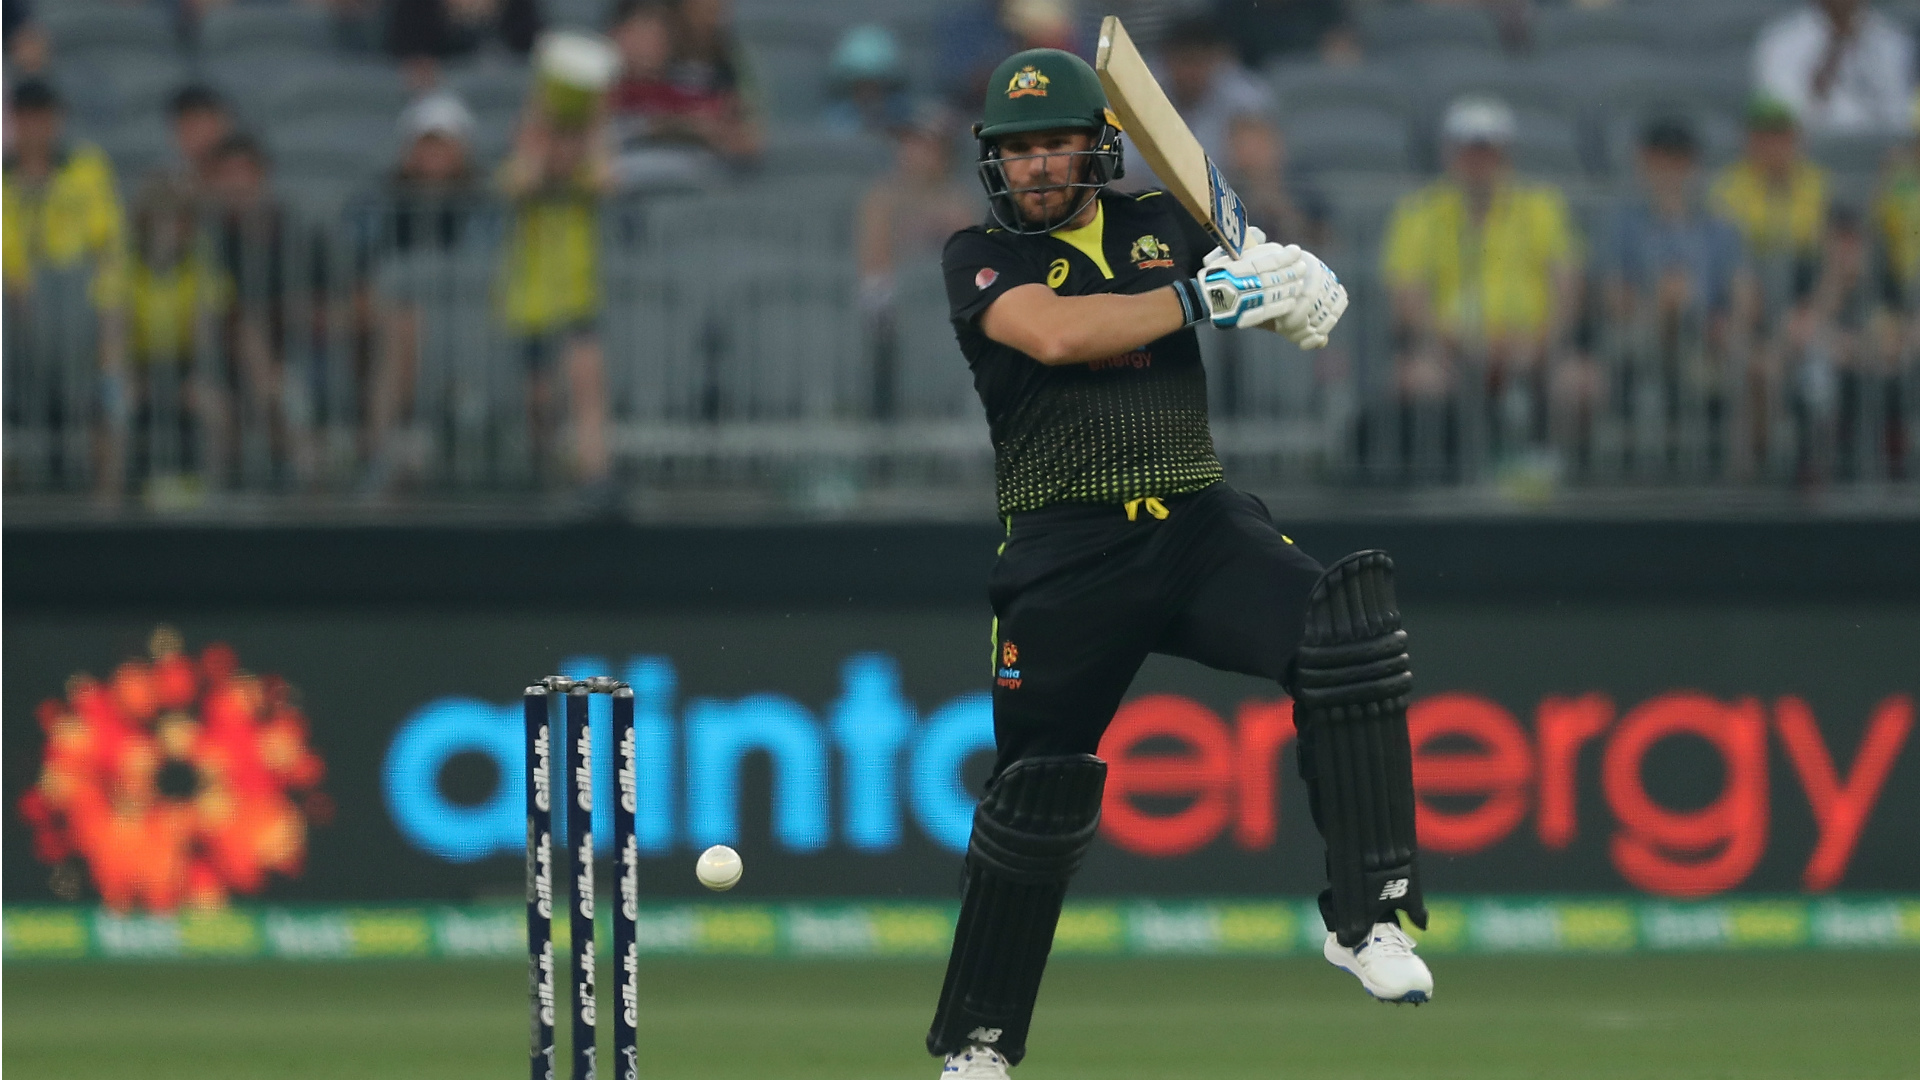 Australia v Pakistan: Aaron Finch fifty fires hosts to victory after Sean Abbott's dream return